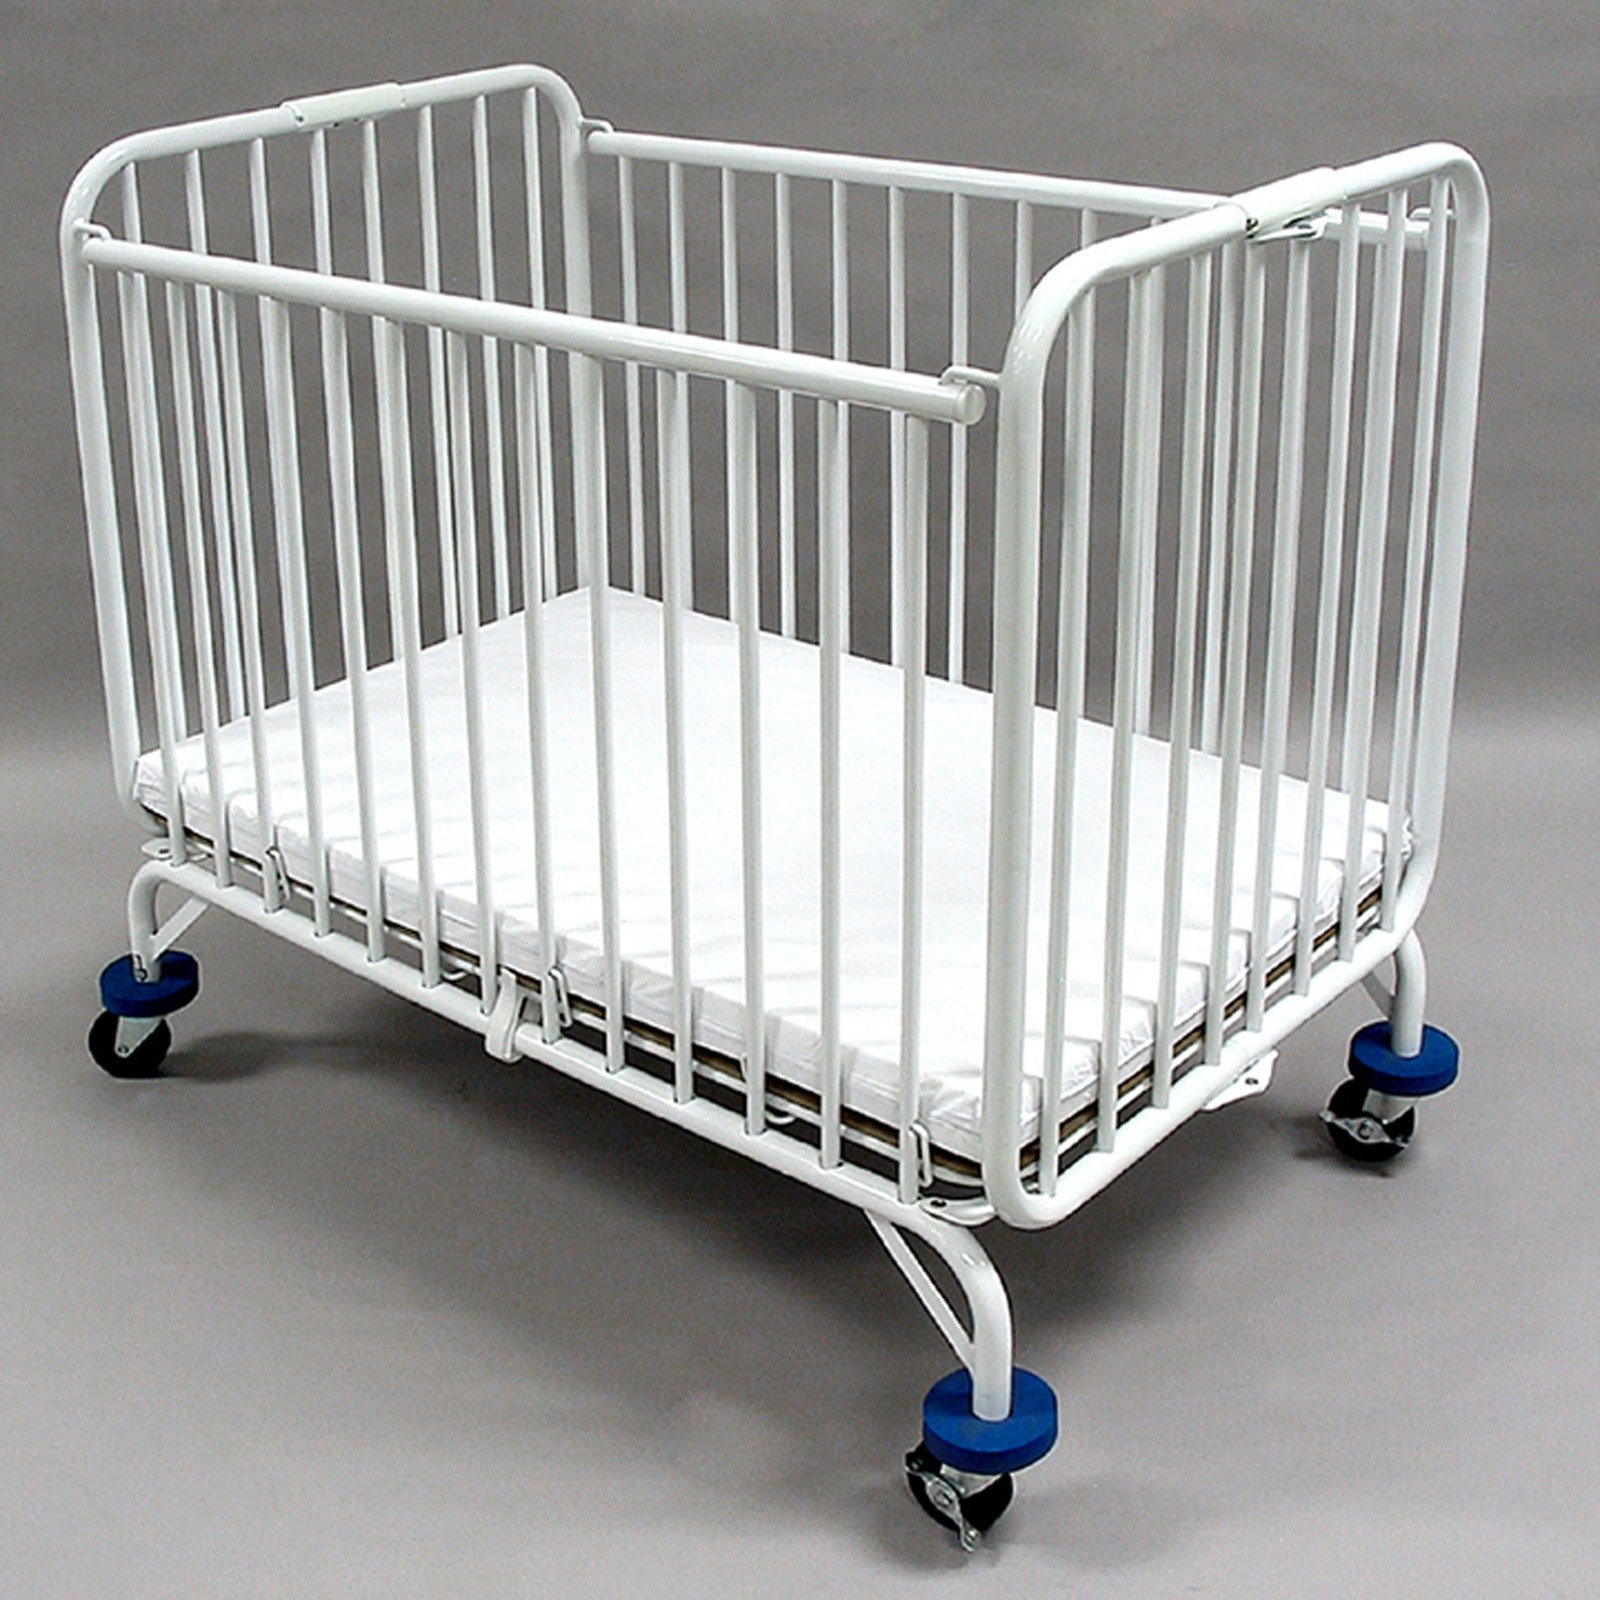 Delicieux LA Baby Full Size Metal Folding Crib